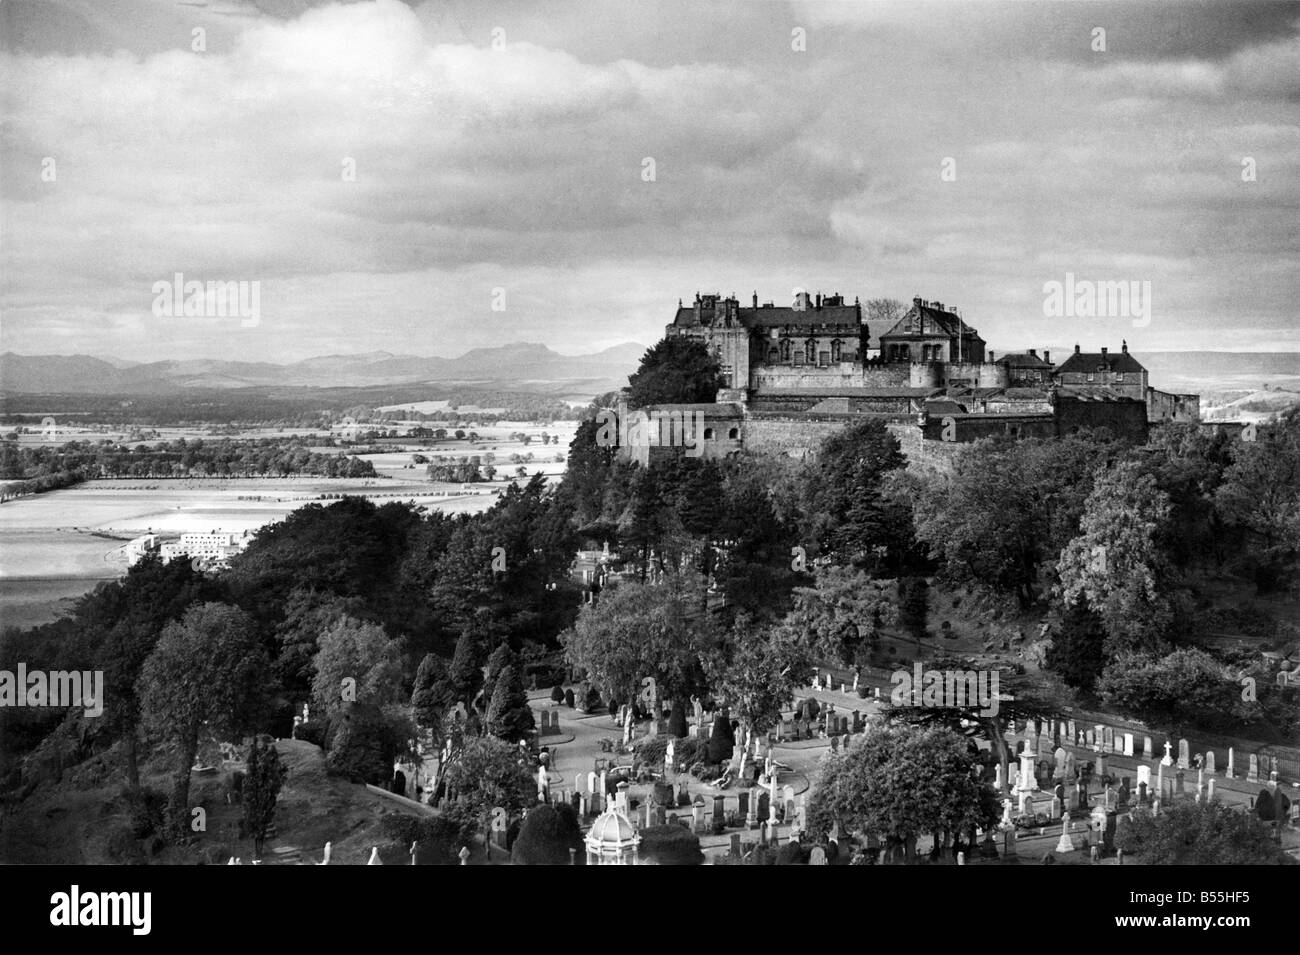 Stirling Castle. The mighty royal castle of Stirling towers above some of the most important battlefields in Scotland's - Stock Image